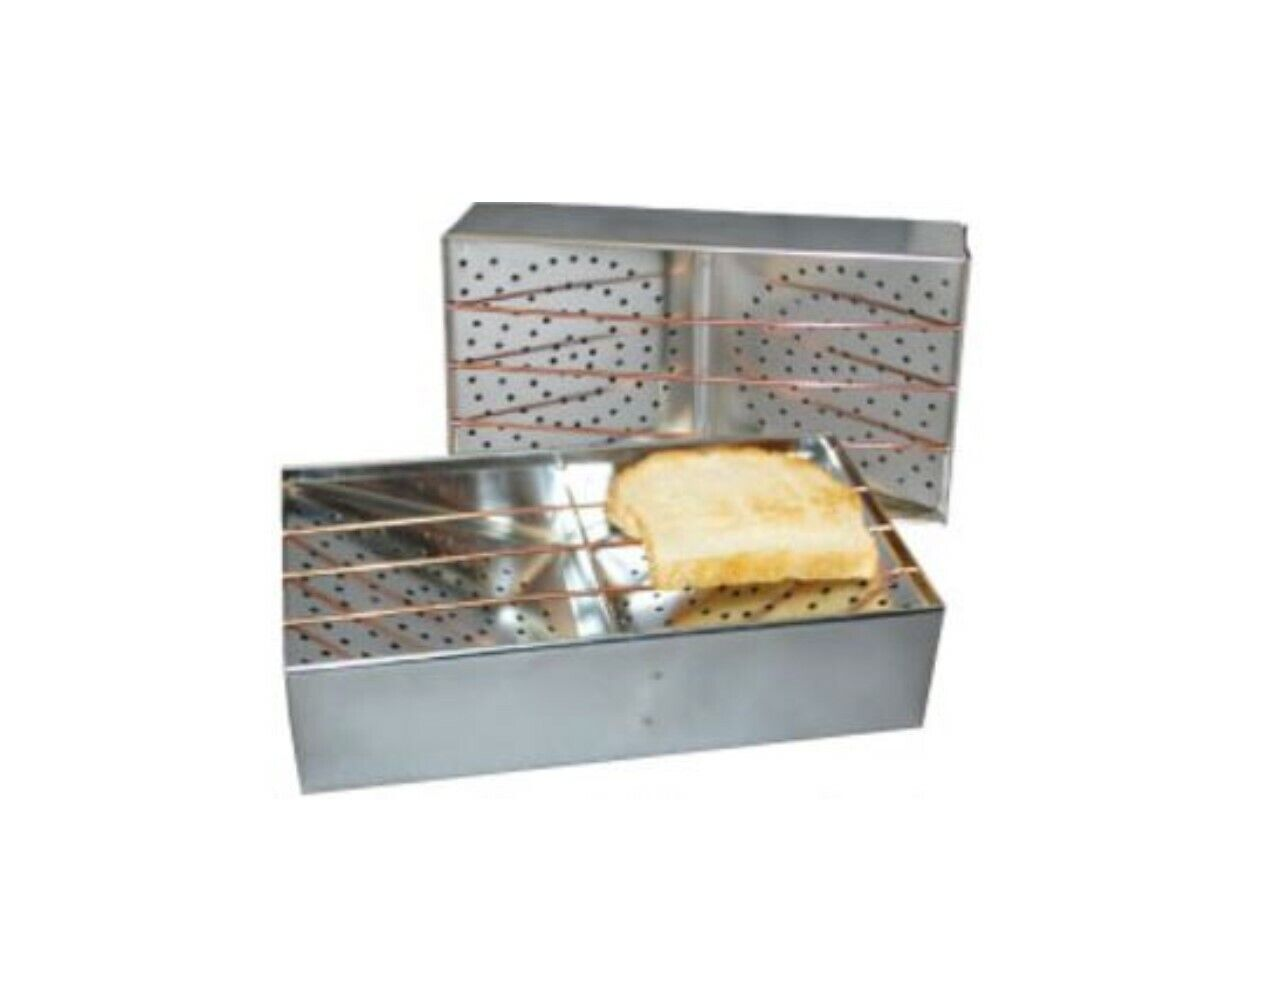 CAMP-A-TOASTER CT-1, Portable Toaster, 9 In. x 5 In. x 2-1/2 In.